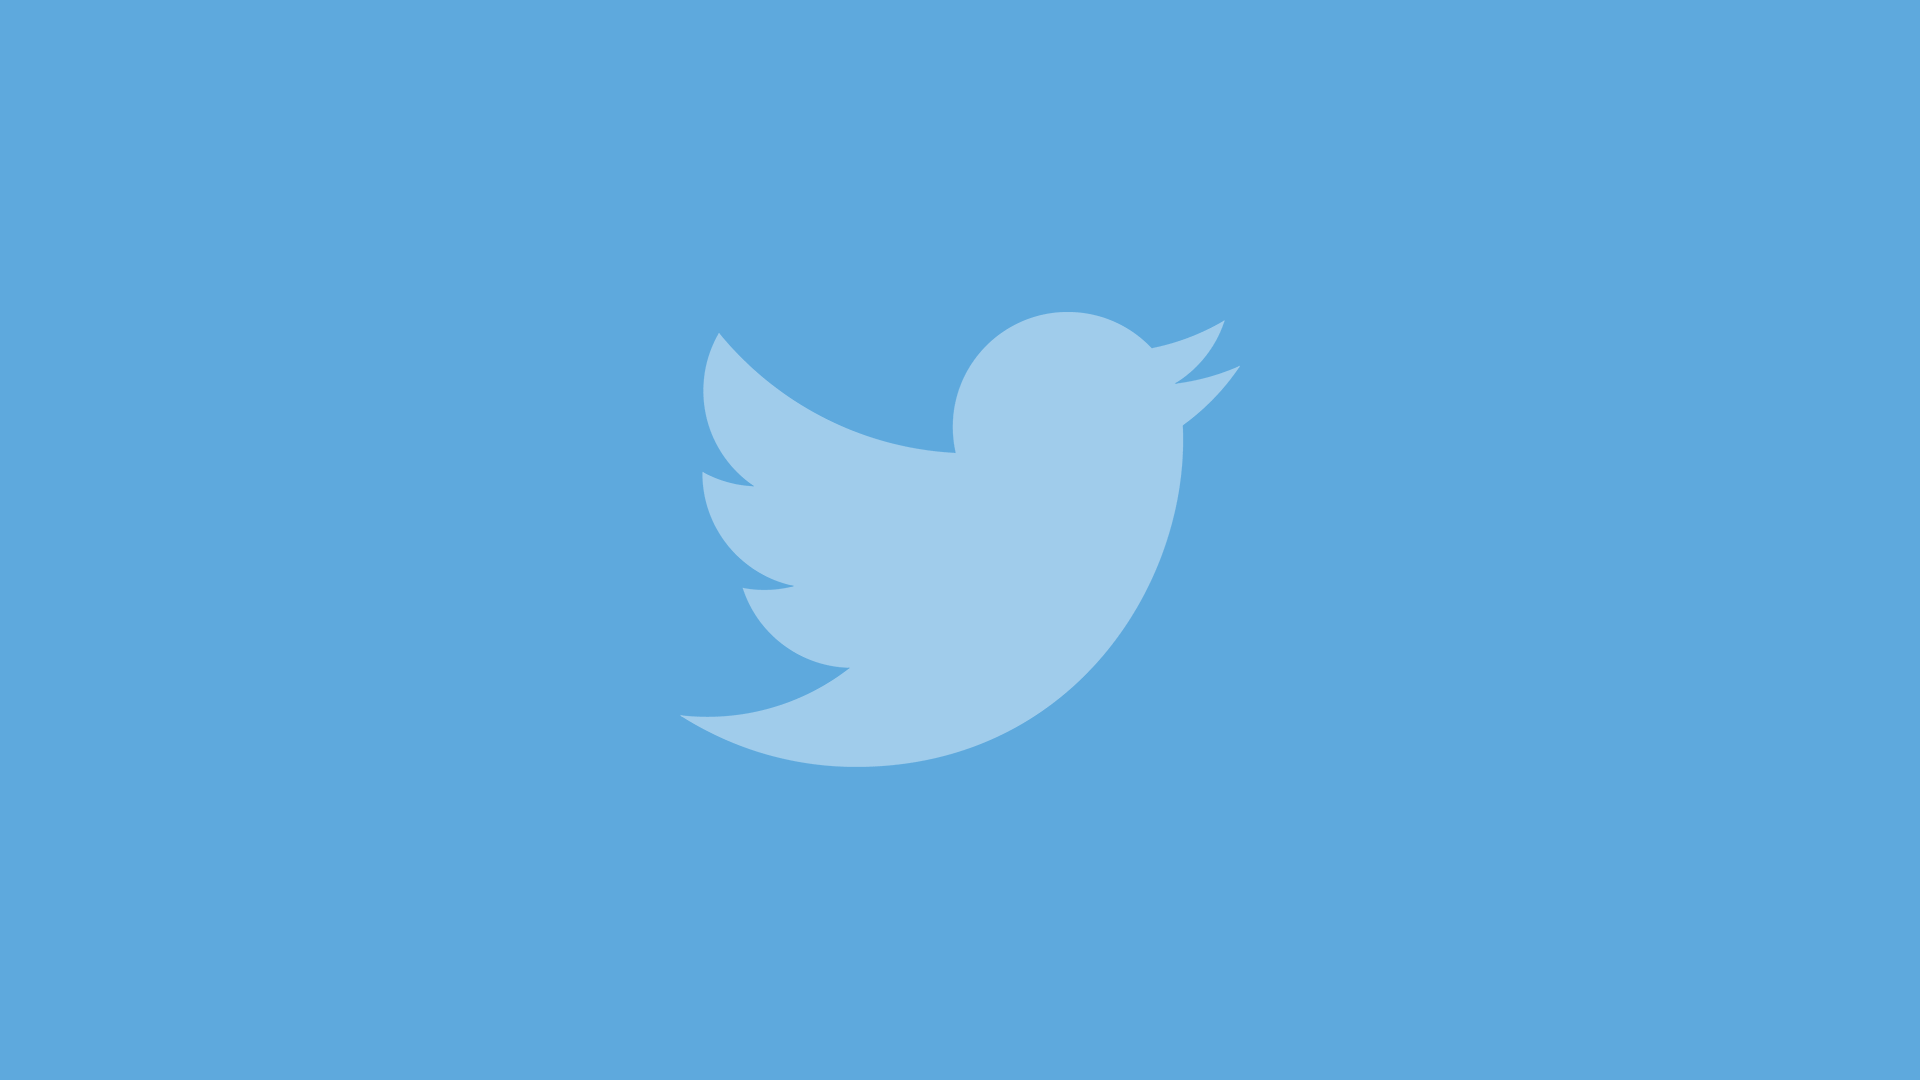 Twitter Expands Character Count for the First Time Since Its Foundation